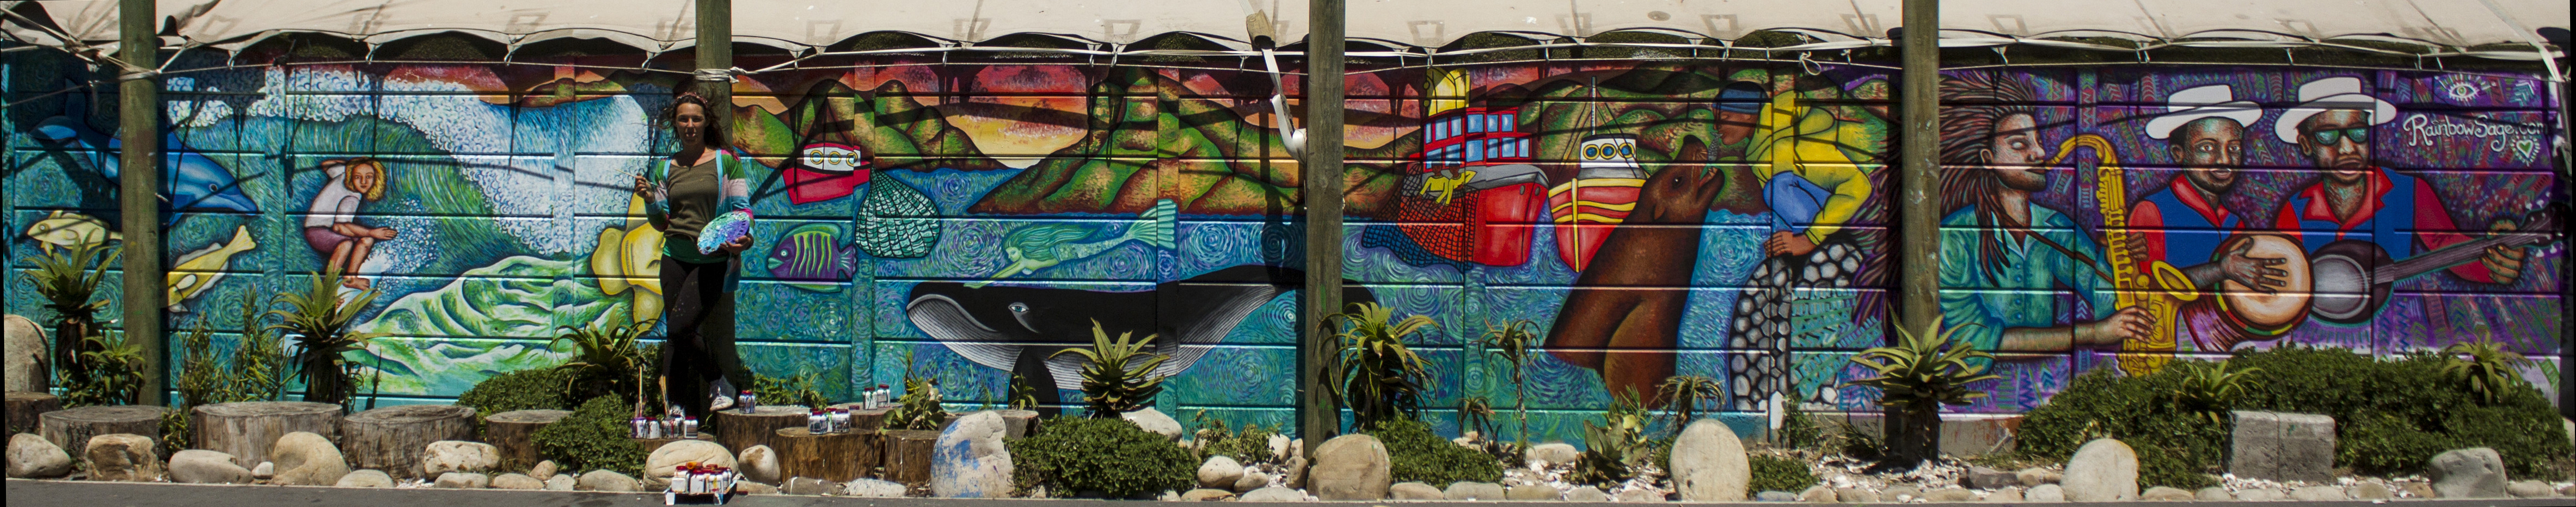 Mural at Hout Bay Harbour Market